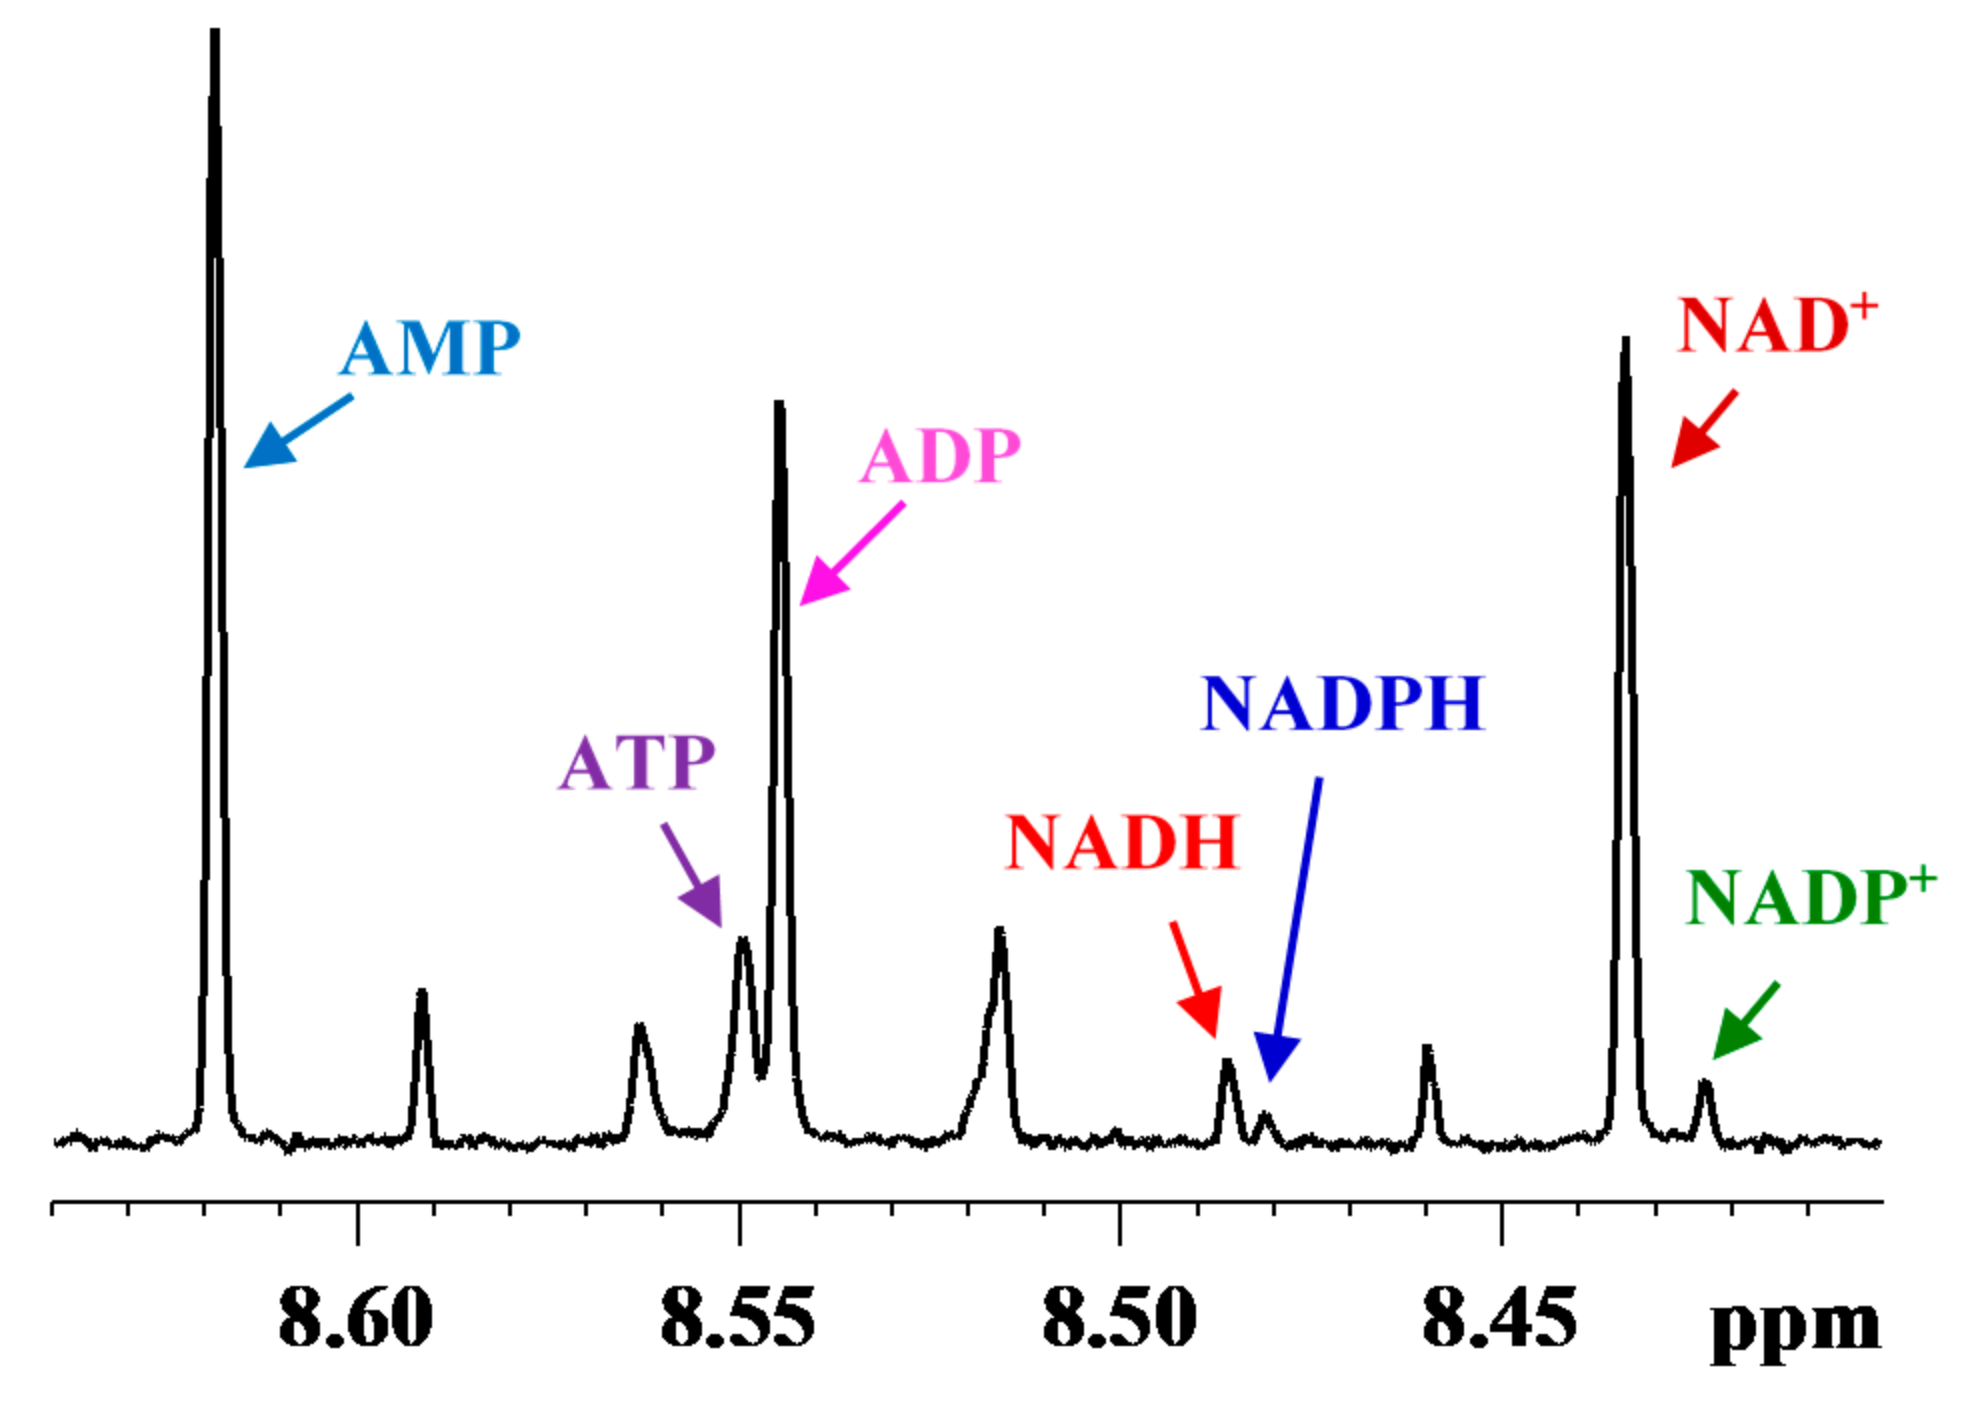 Profiling Redox and Energy Coenzymes in Whole Blood, Tissue and Cells Using NMR Spectroscopy